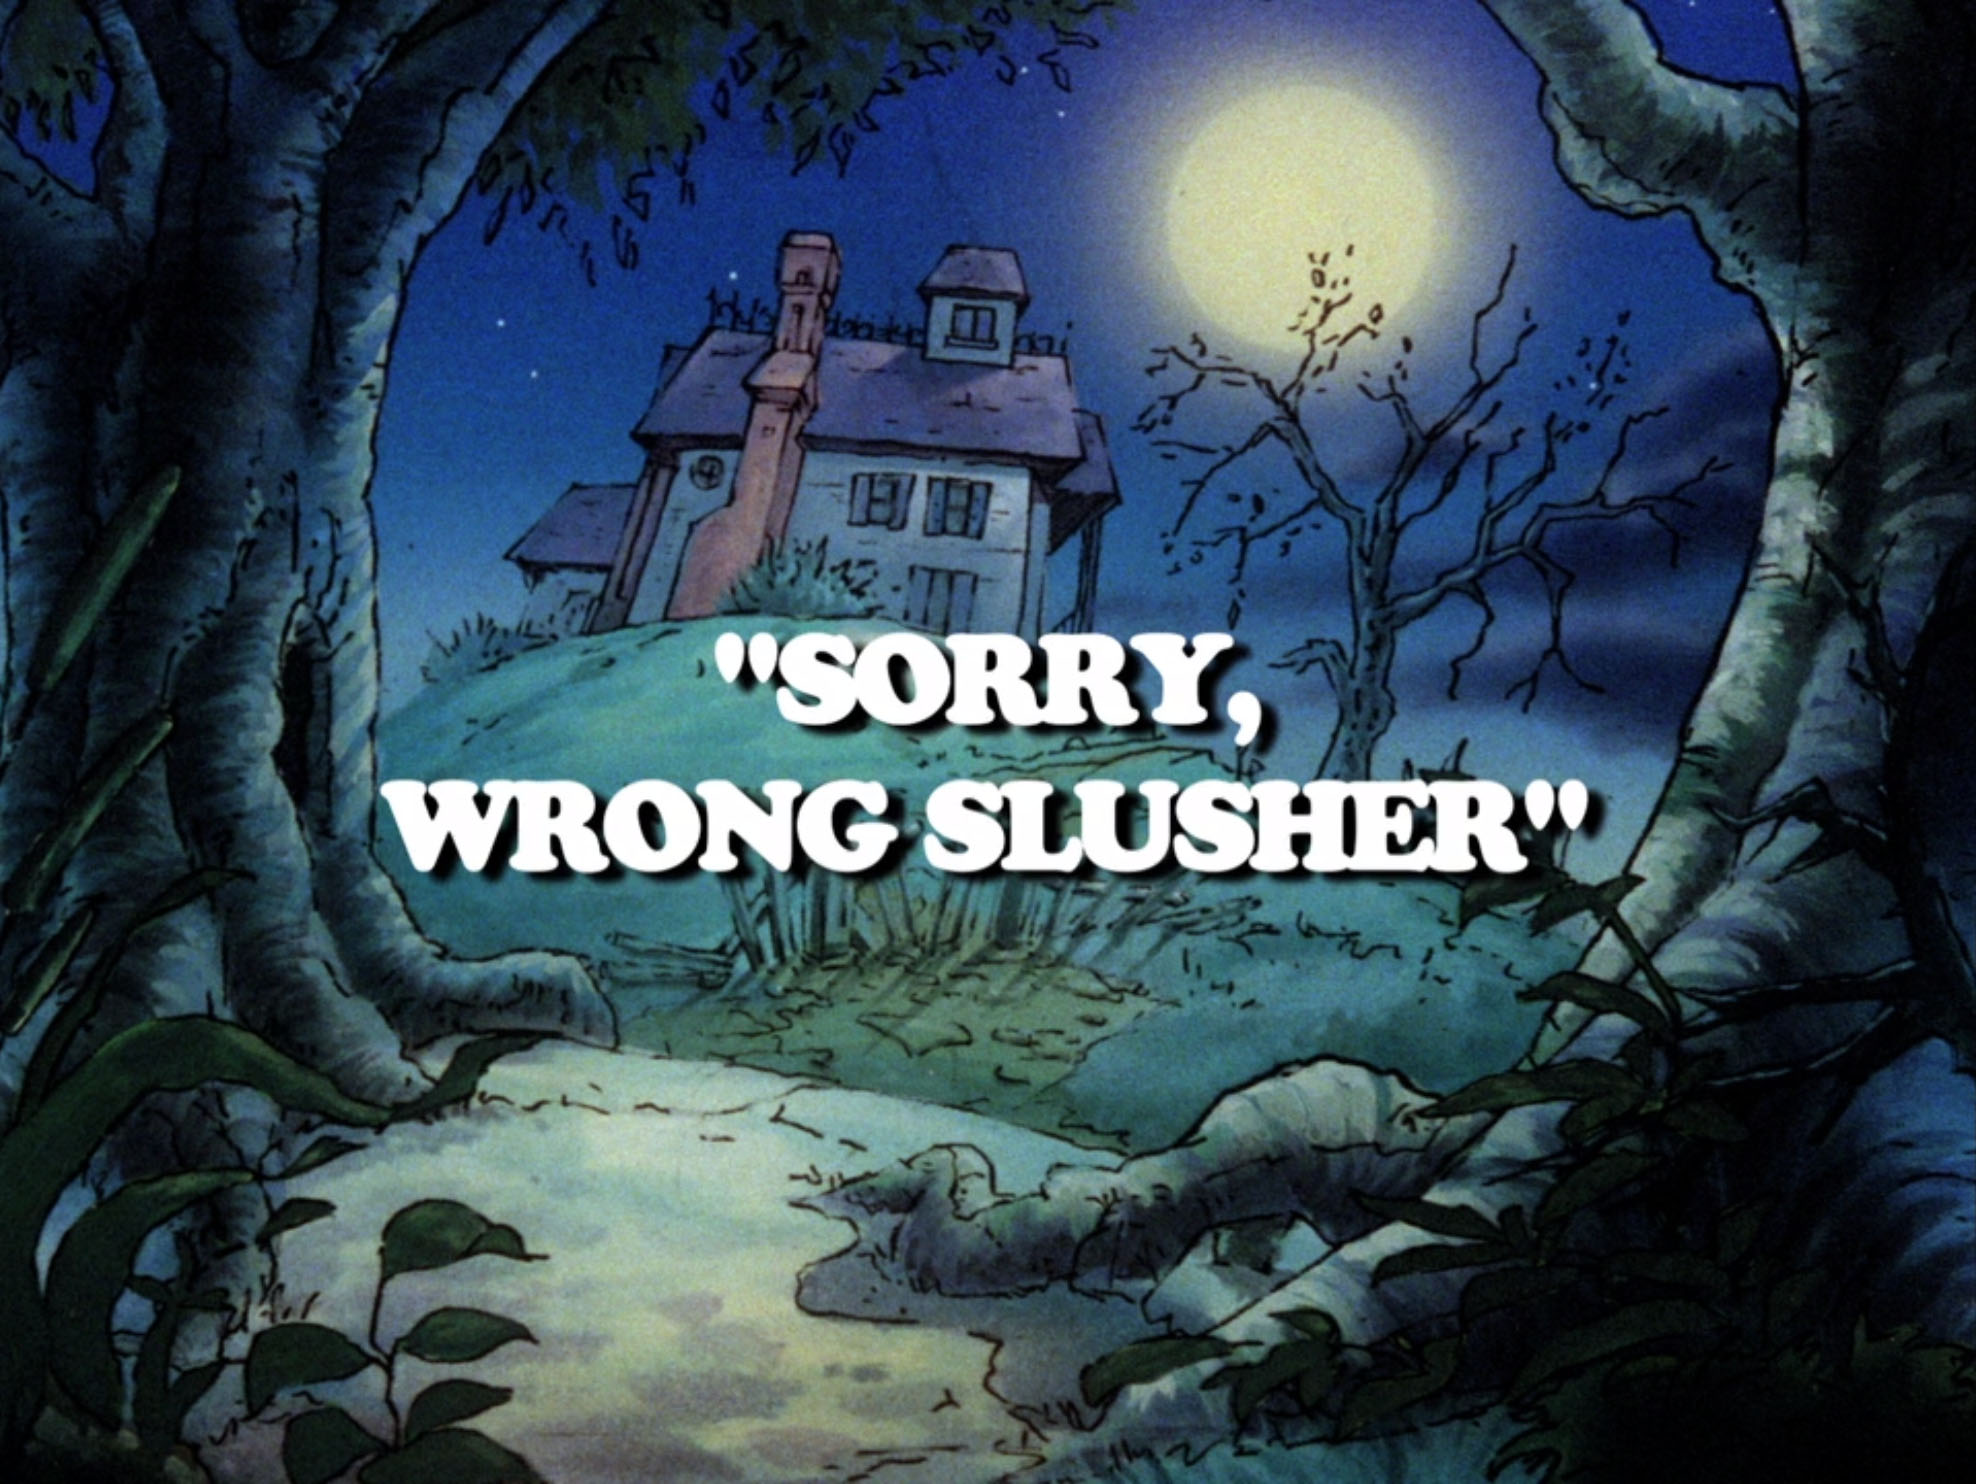 File:Sorry wrong slusher.jpg